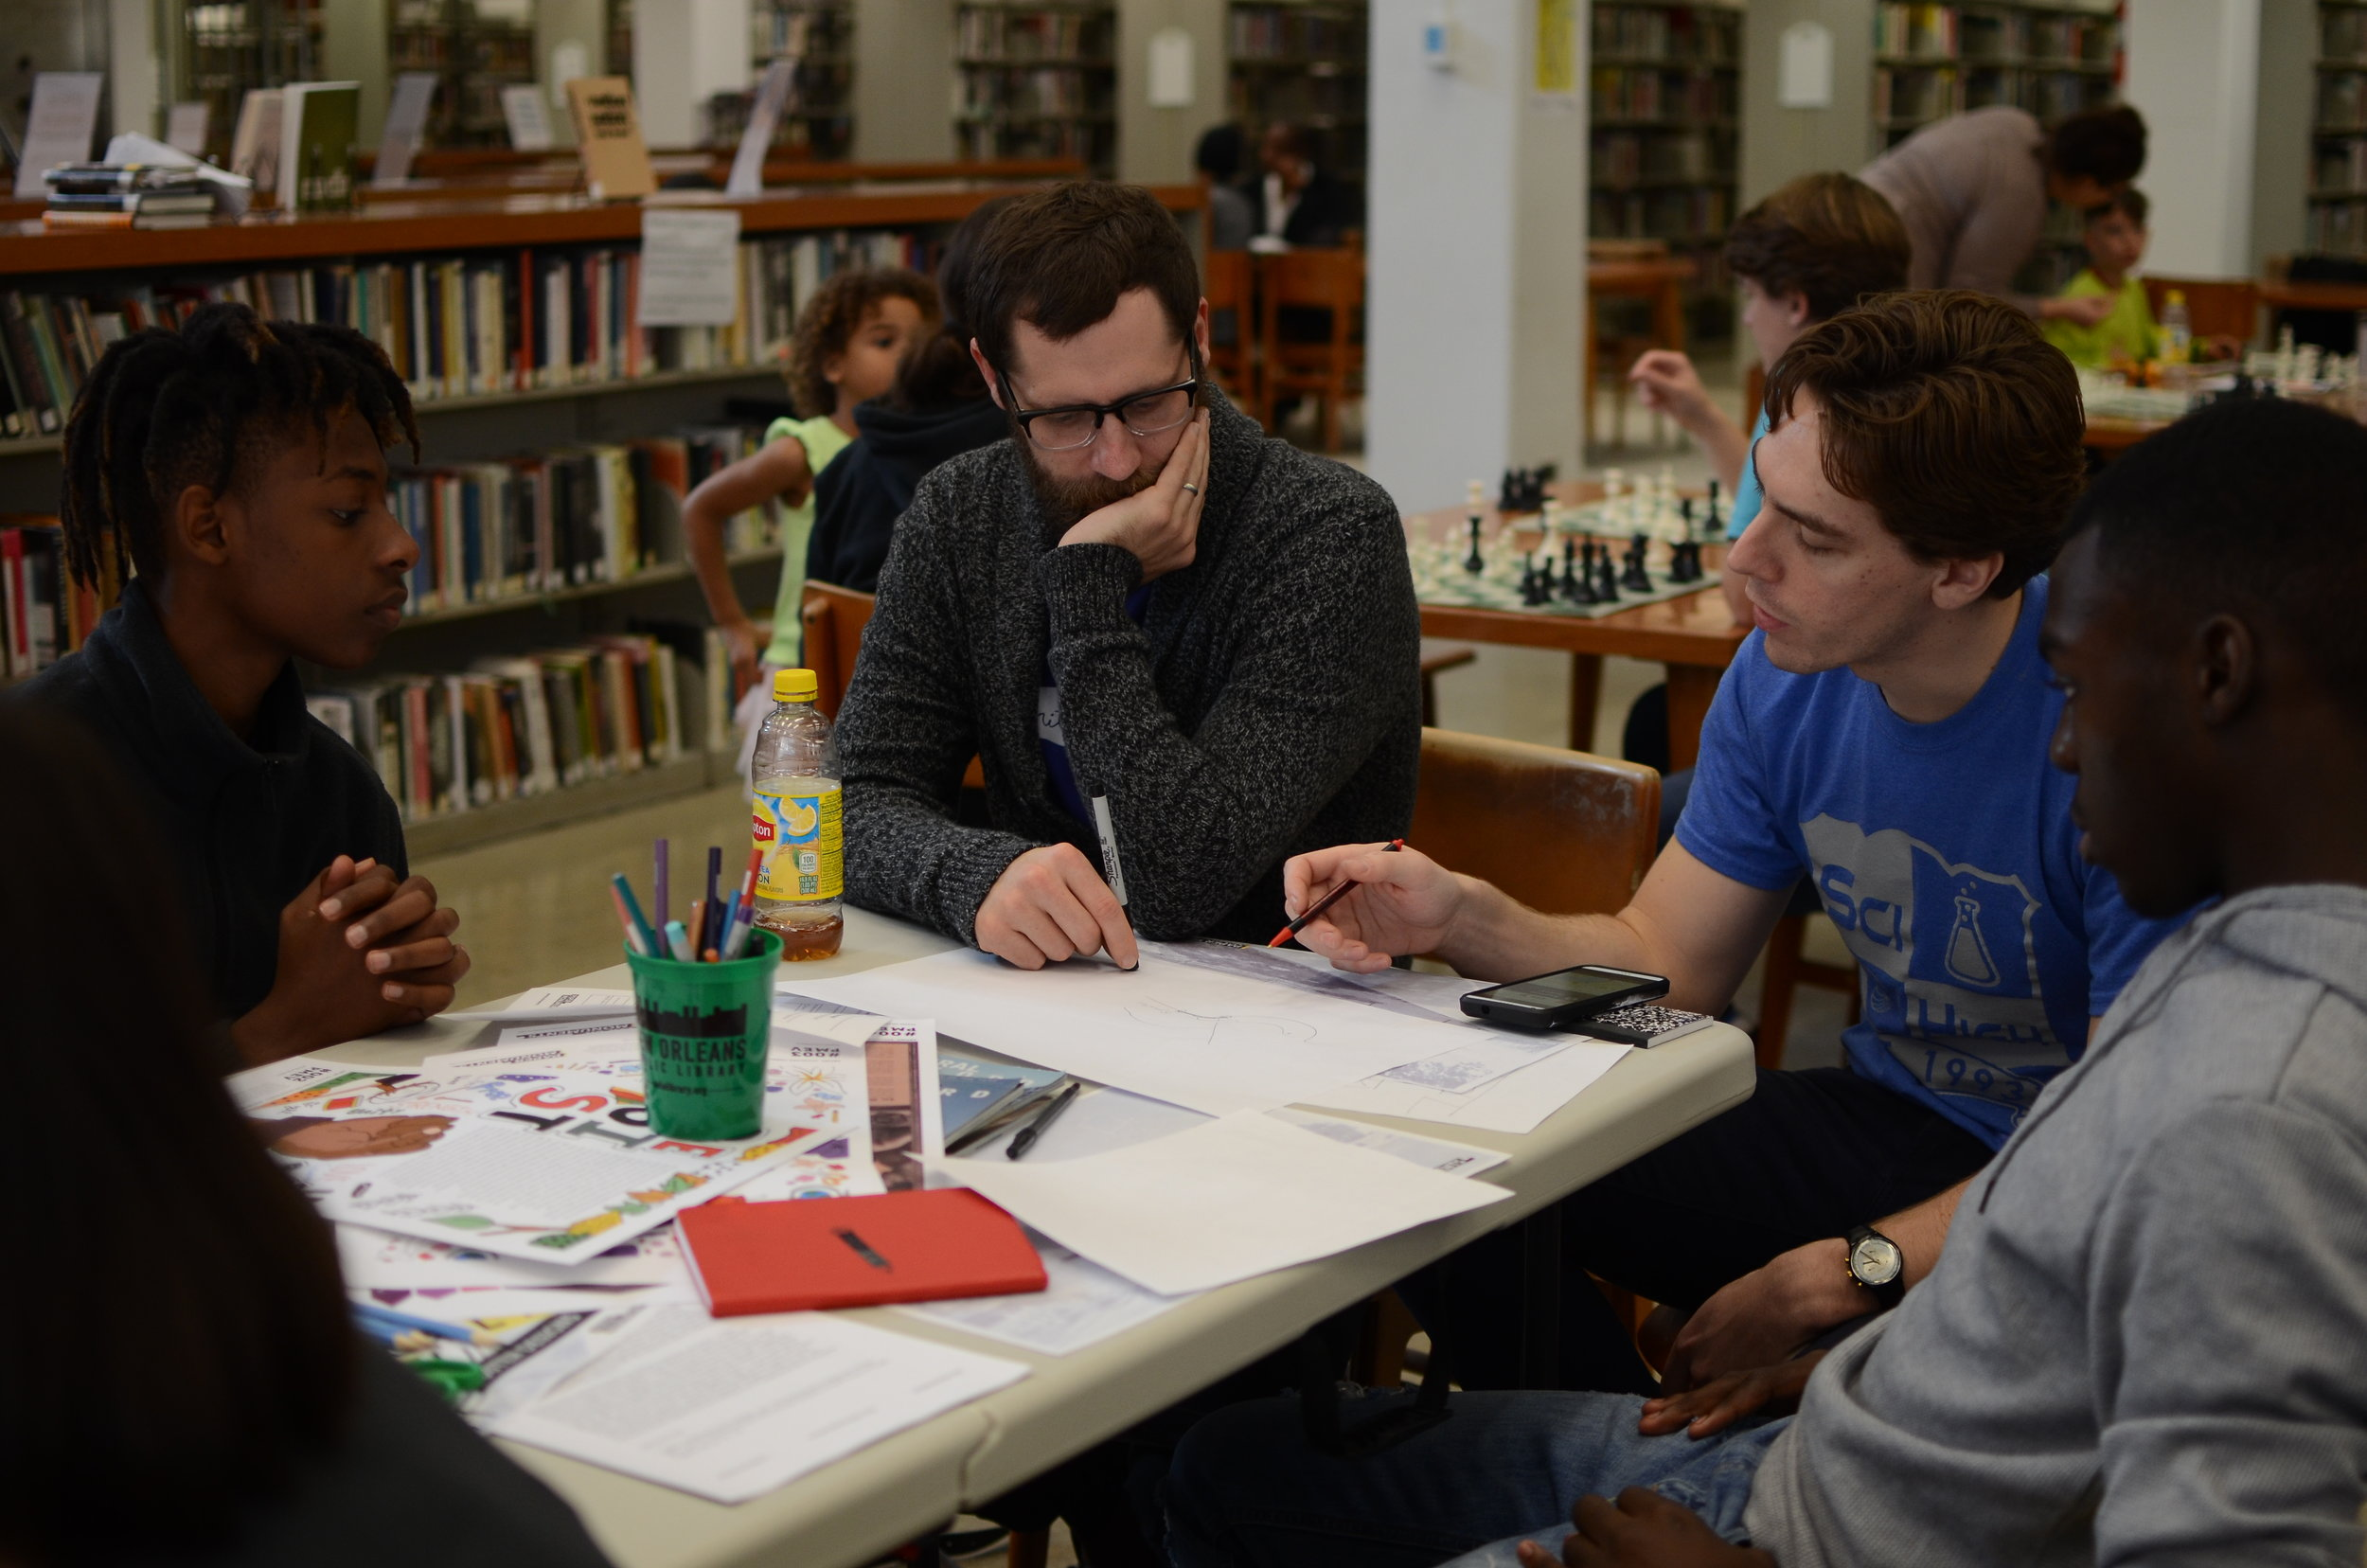 History Unbound, a read-in, write-in, research-in at the Main Library